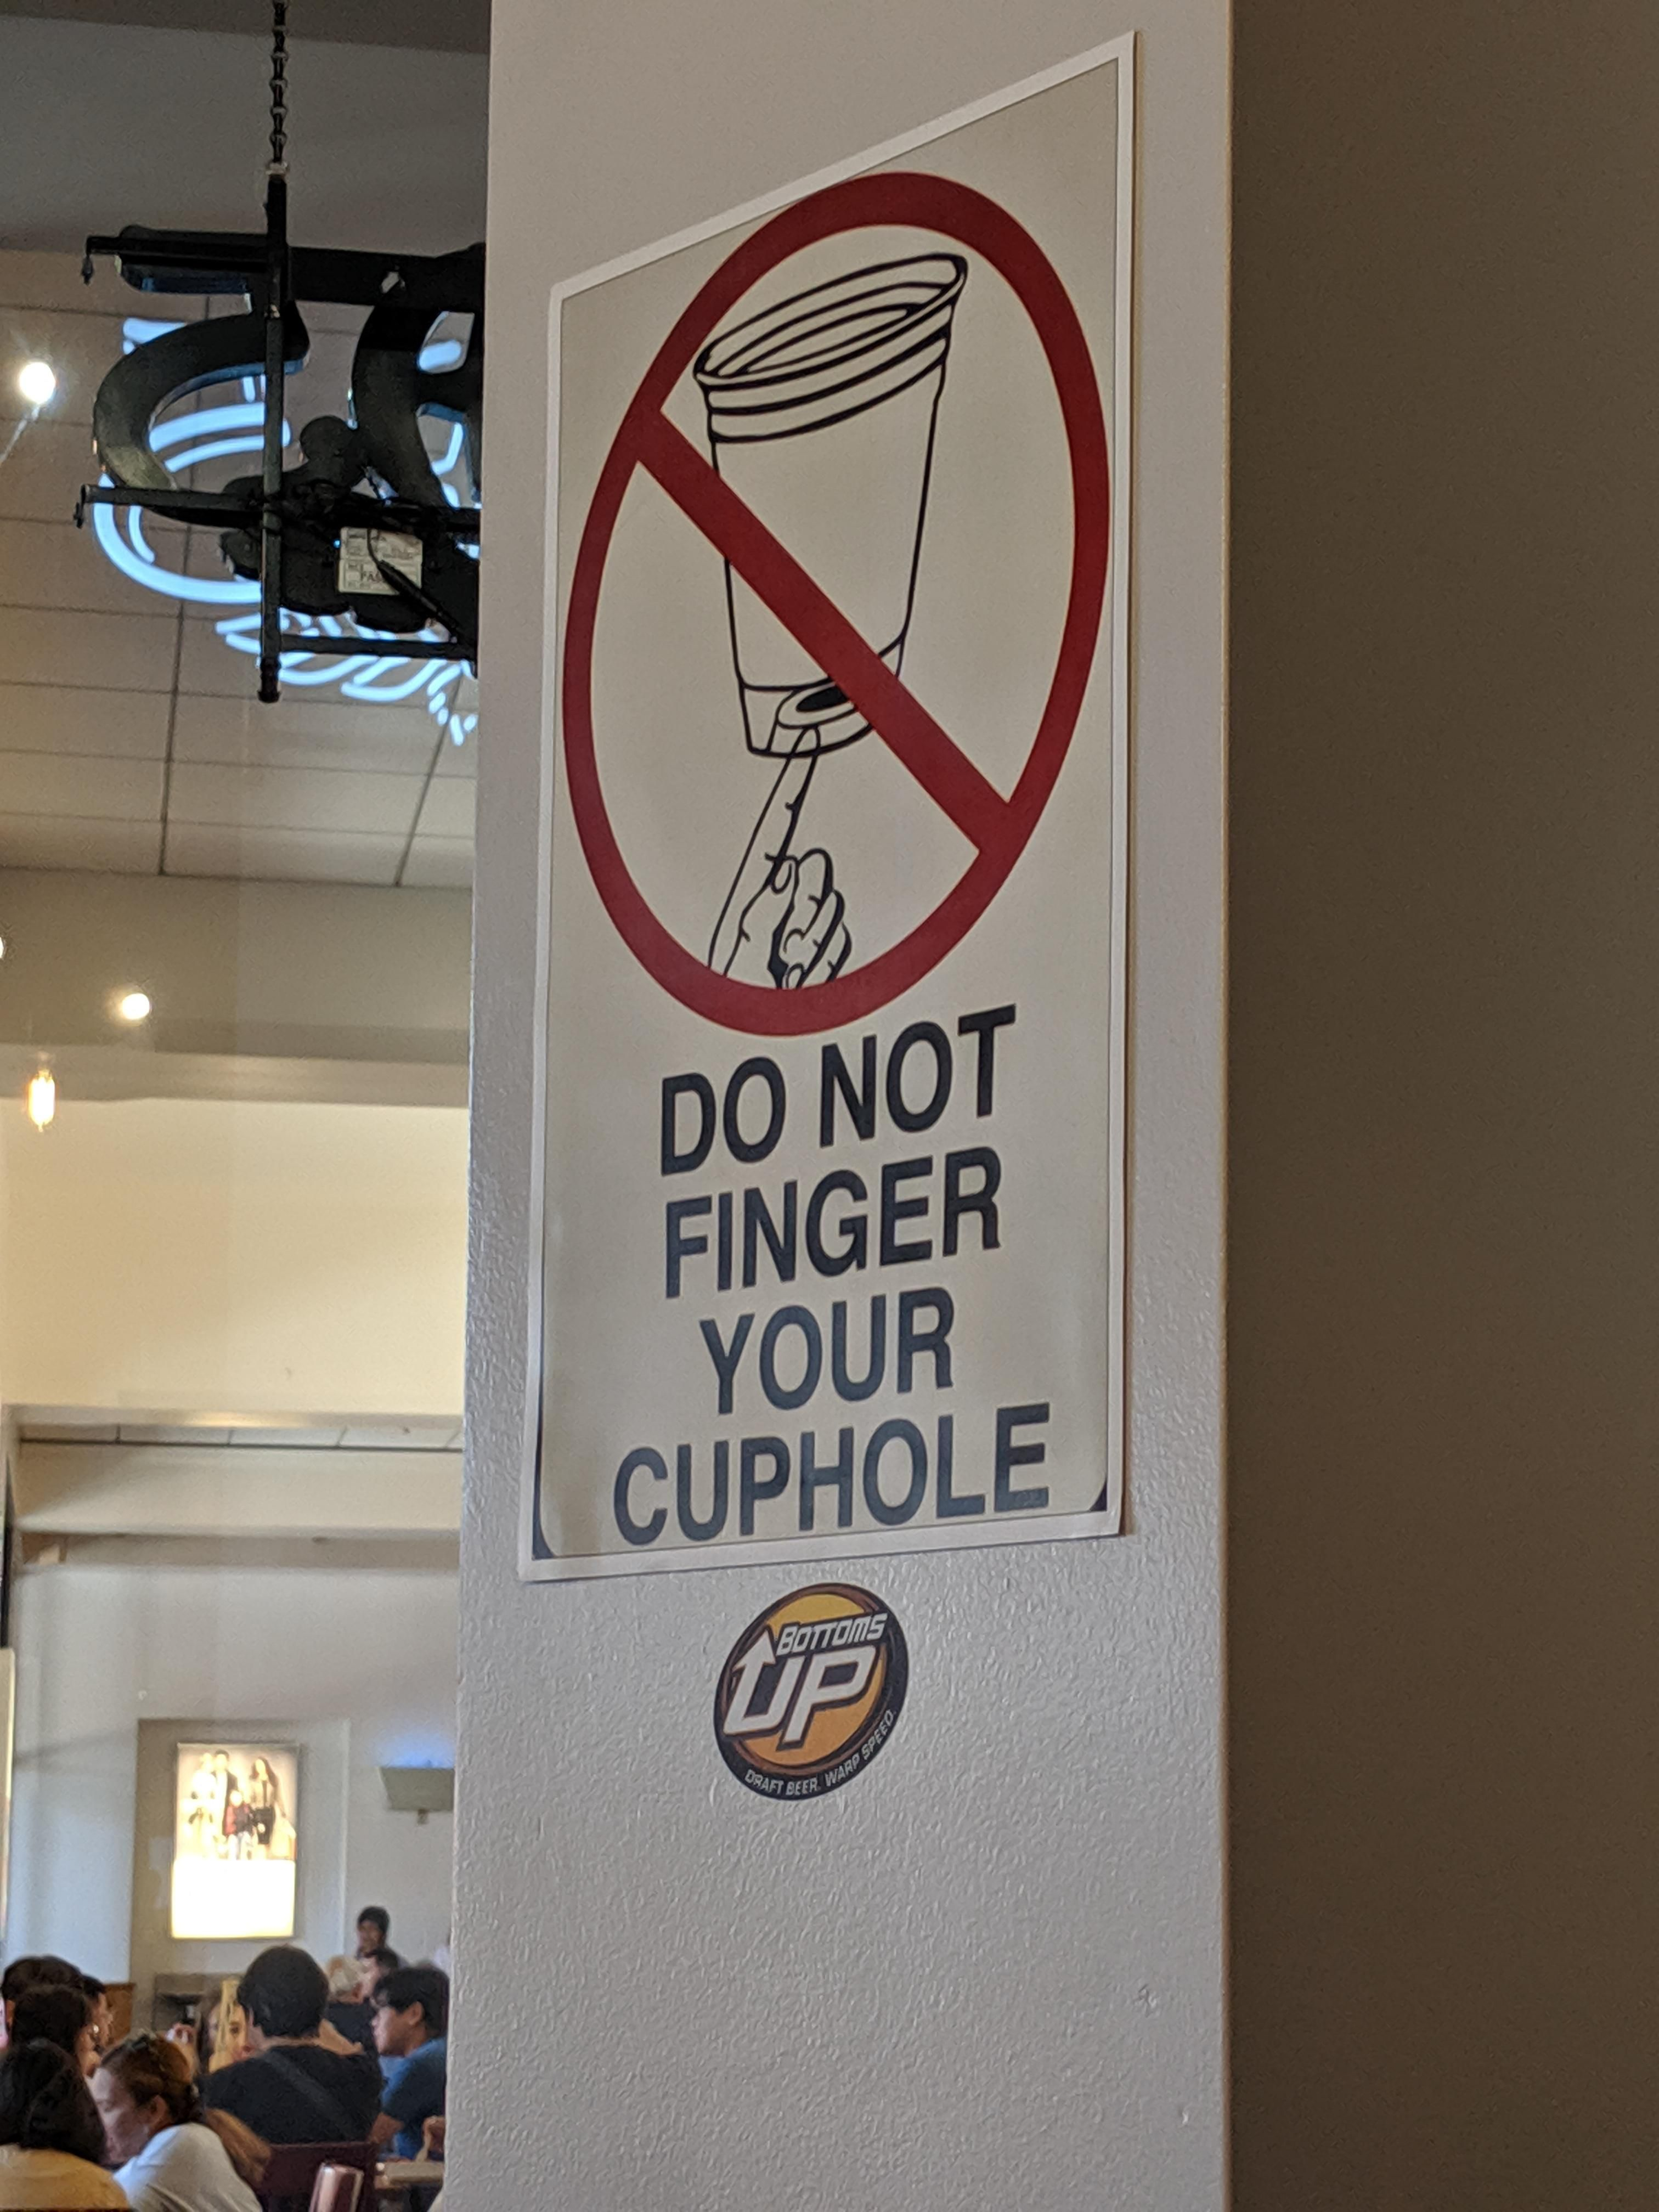 do not finger your cuphole.jpg